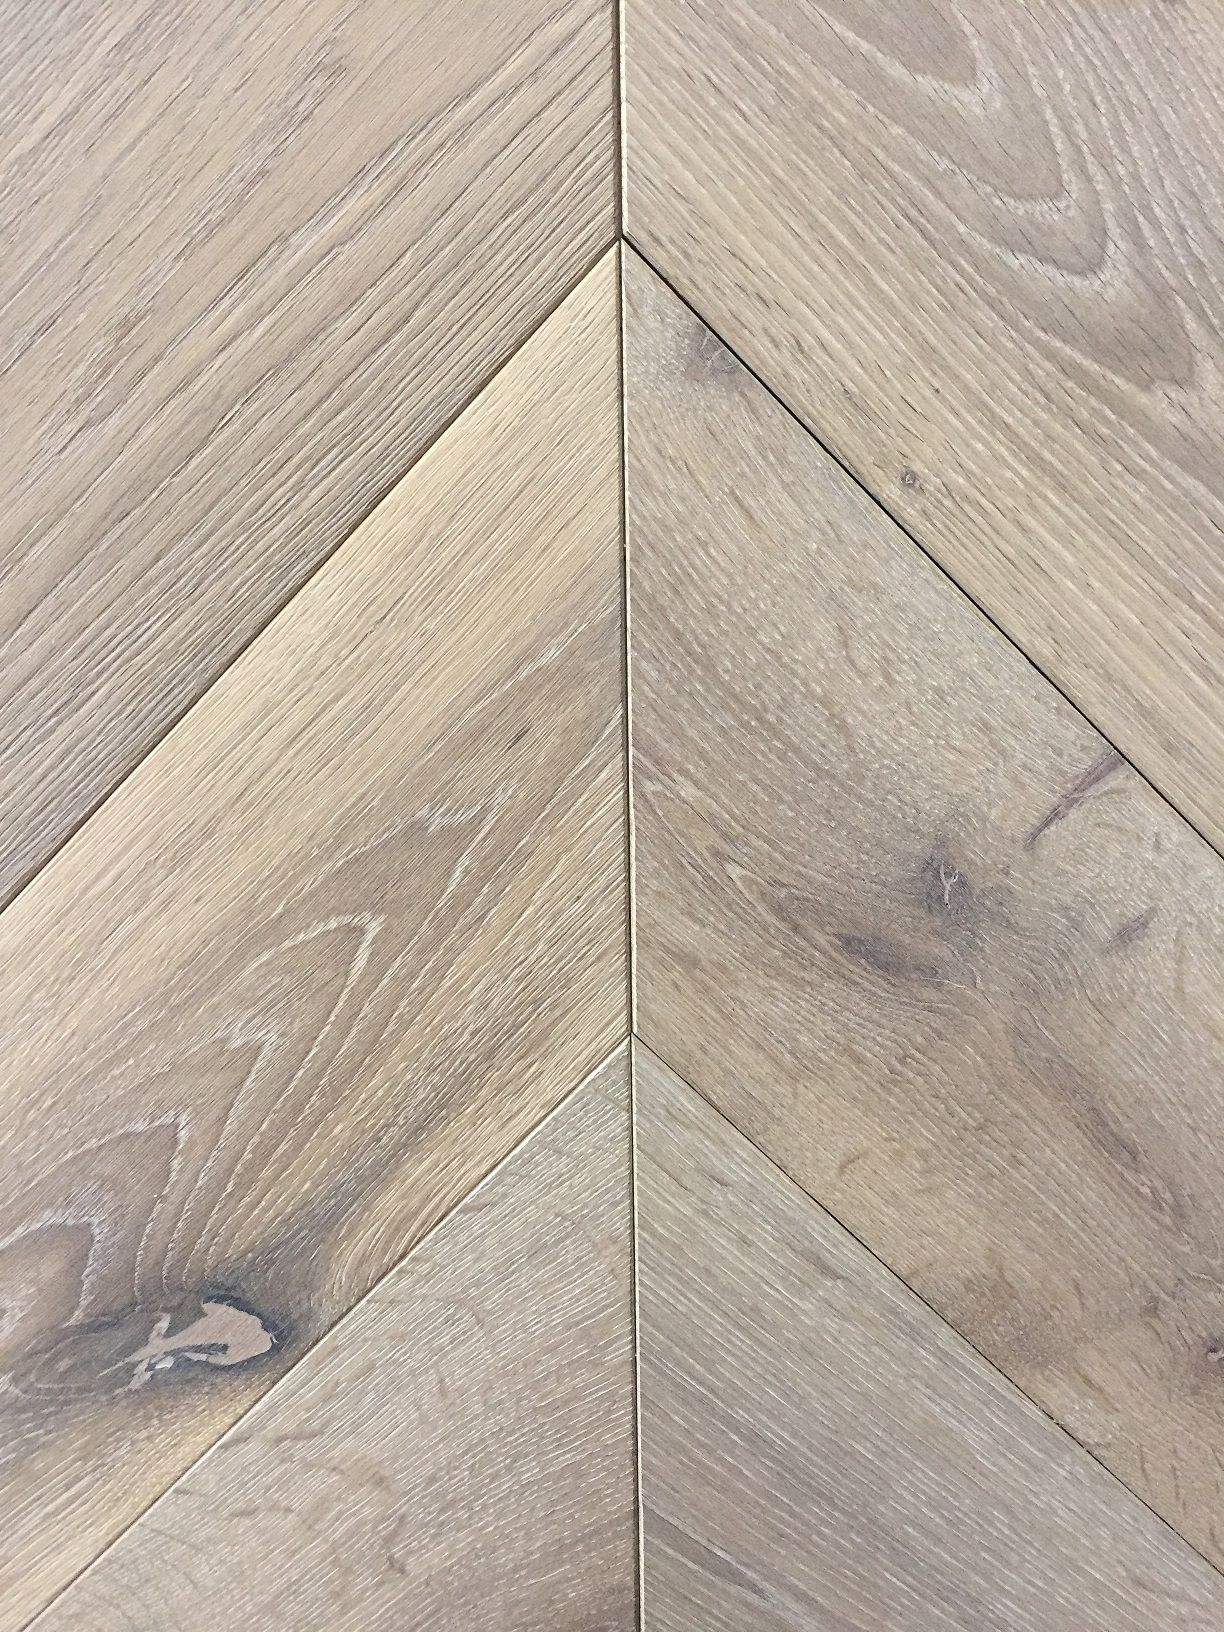 silver grey chevron engineered oak parquet flooring light brushed special treatment grey oil. Black Bedroom Furniture Sets. Home Design Ideas